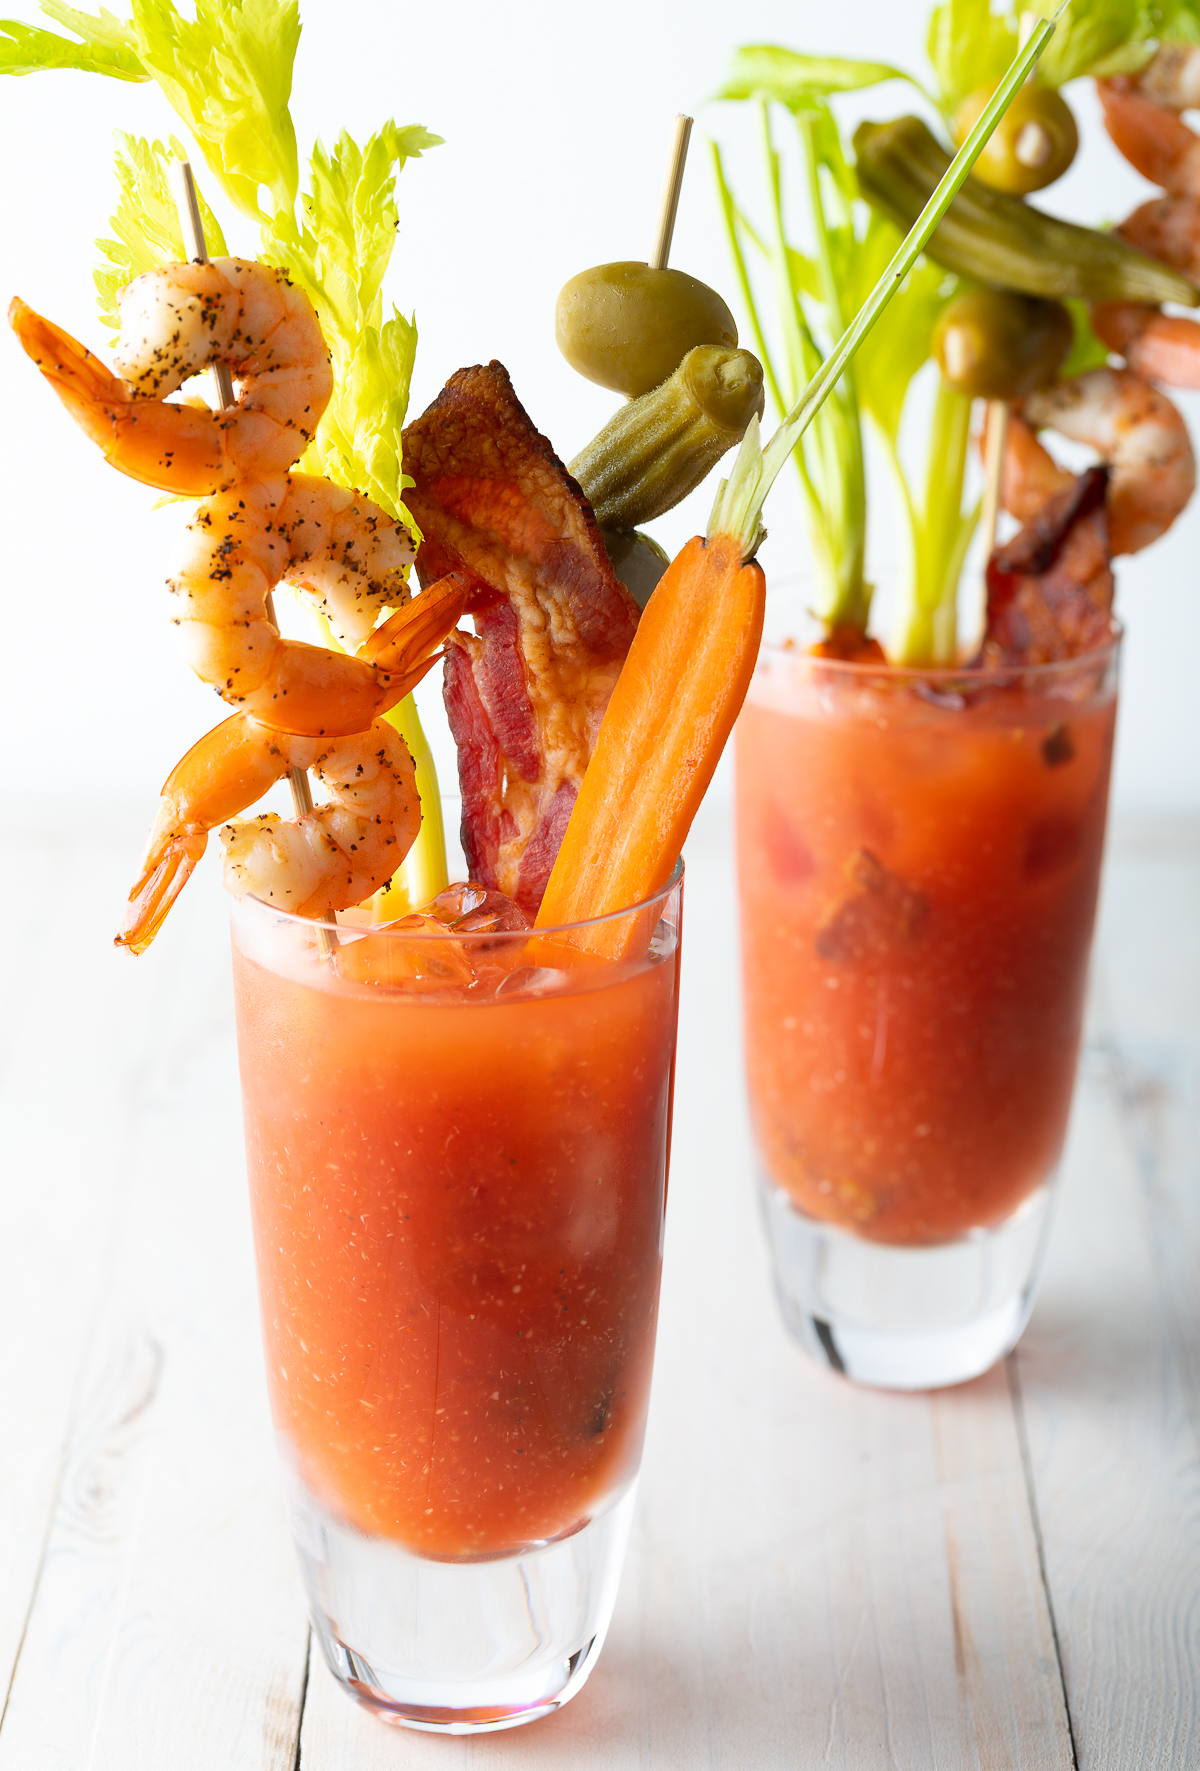 Lt Dan S Best Bloody Mary Mix Recipe Homemade A Spicy Perspective